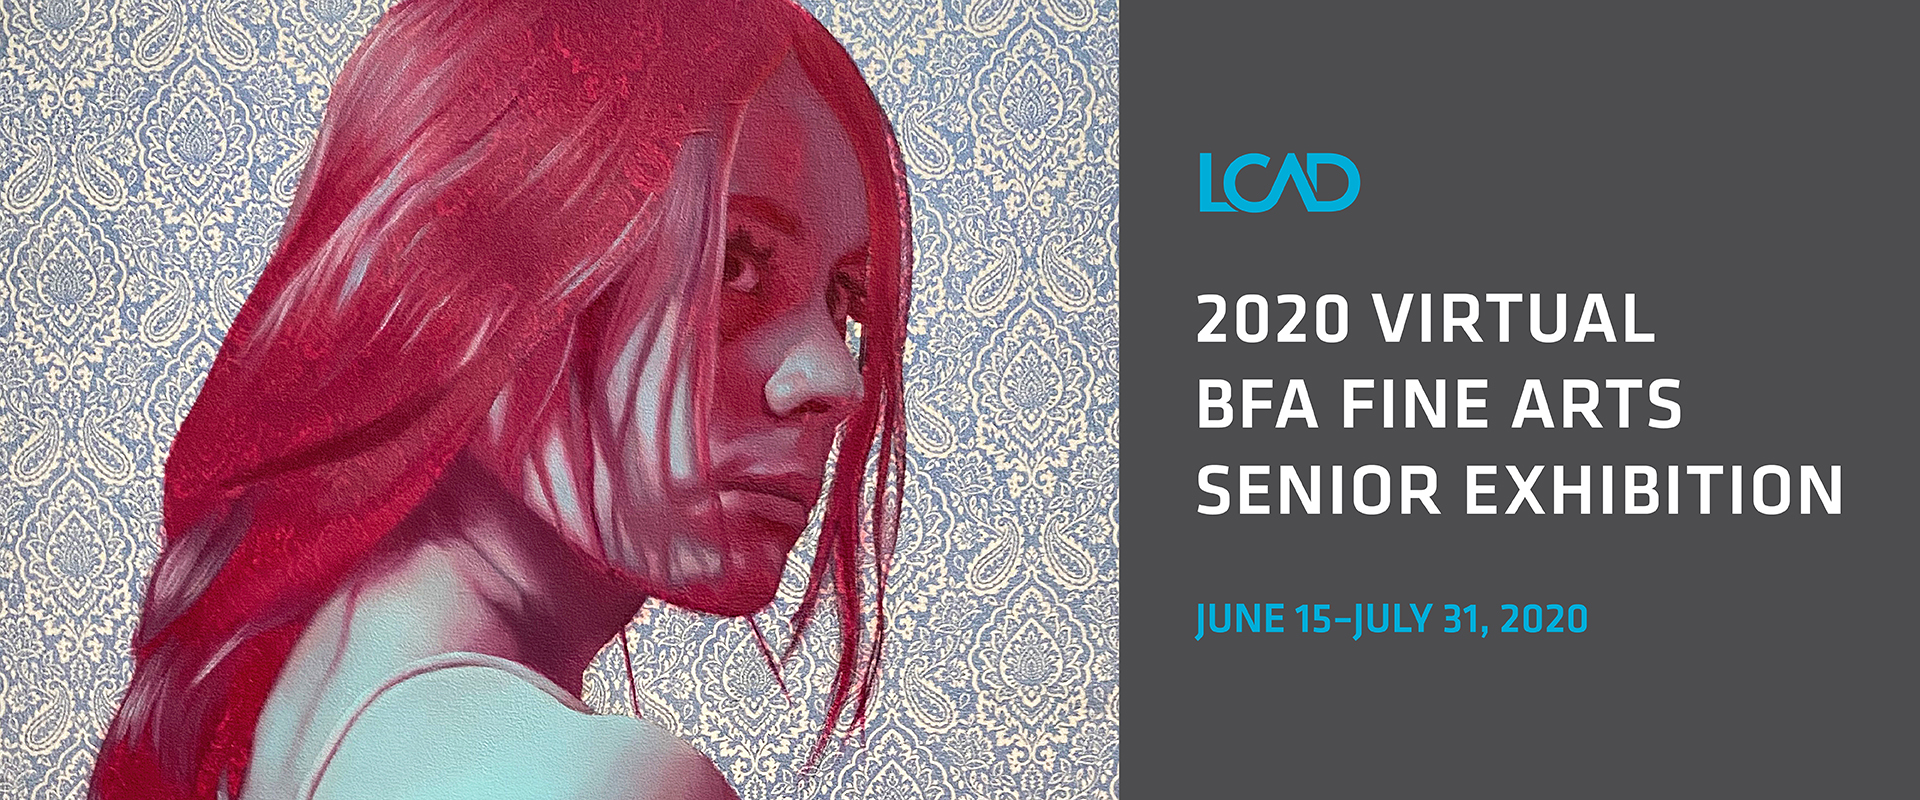 2020 VIRTUAL BFA FINE ARTS EXHIBITION JUNE 15–JULY 31, 2020 Open for viewing now